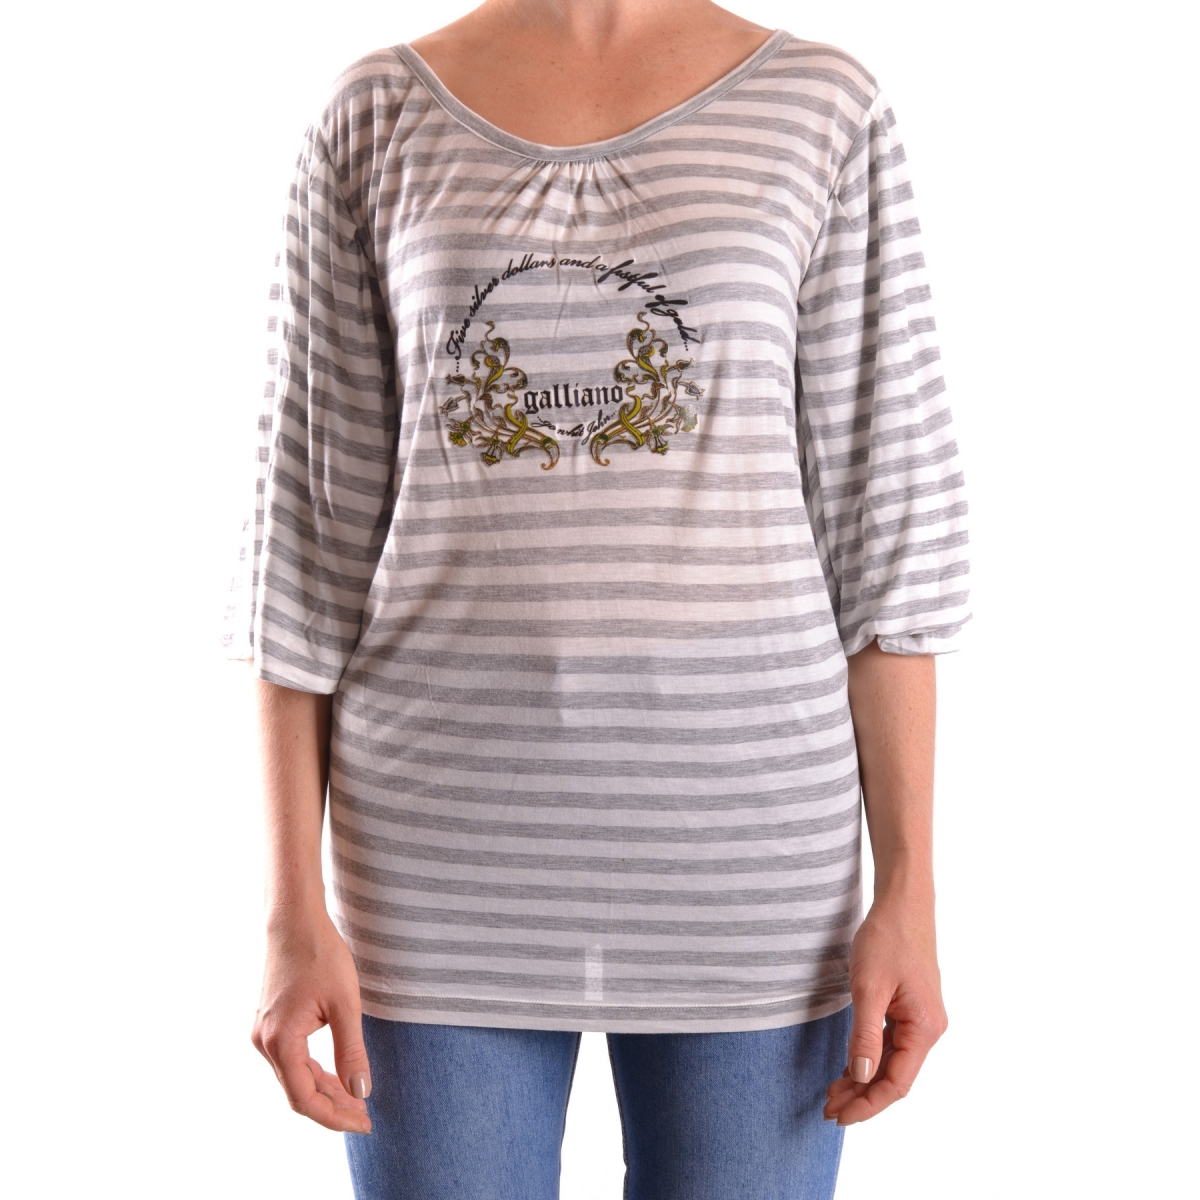 Tshirt Manica Corta Galliano 25000IT -60%